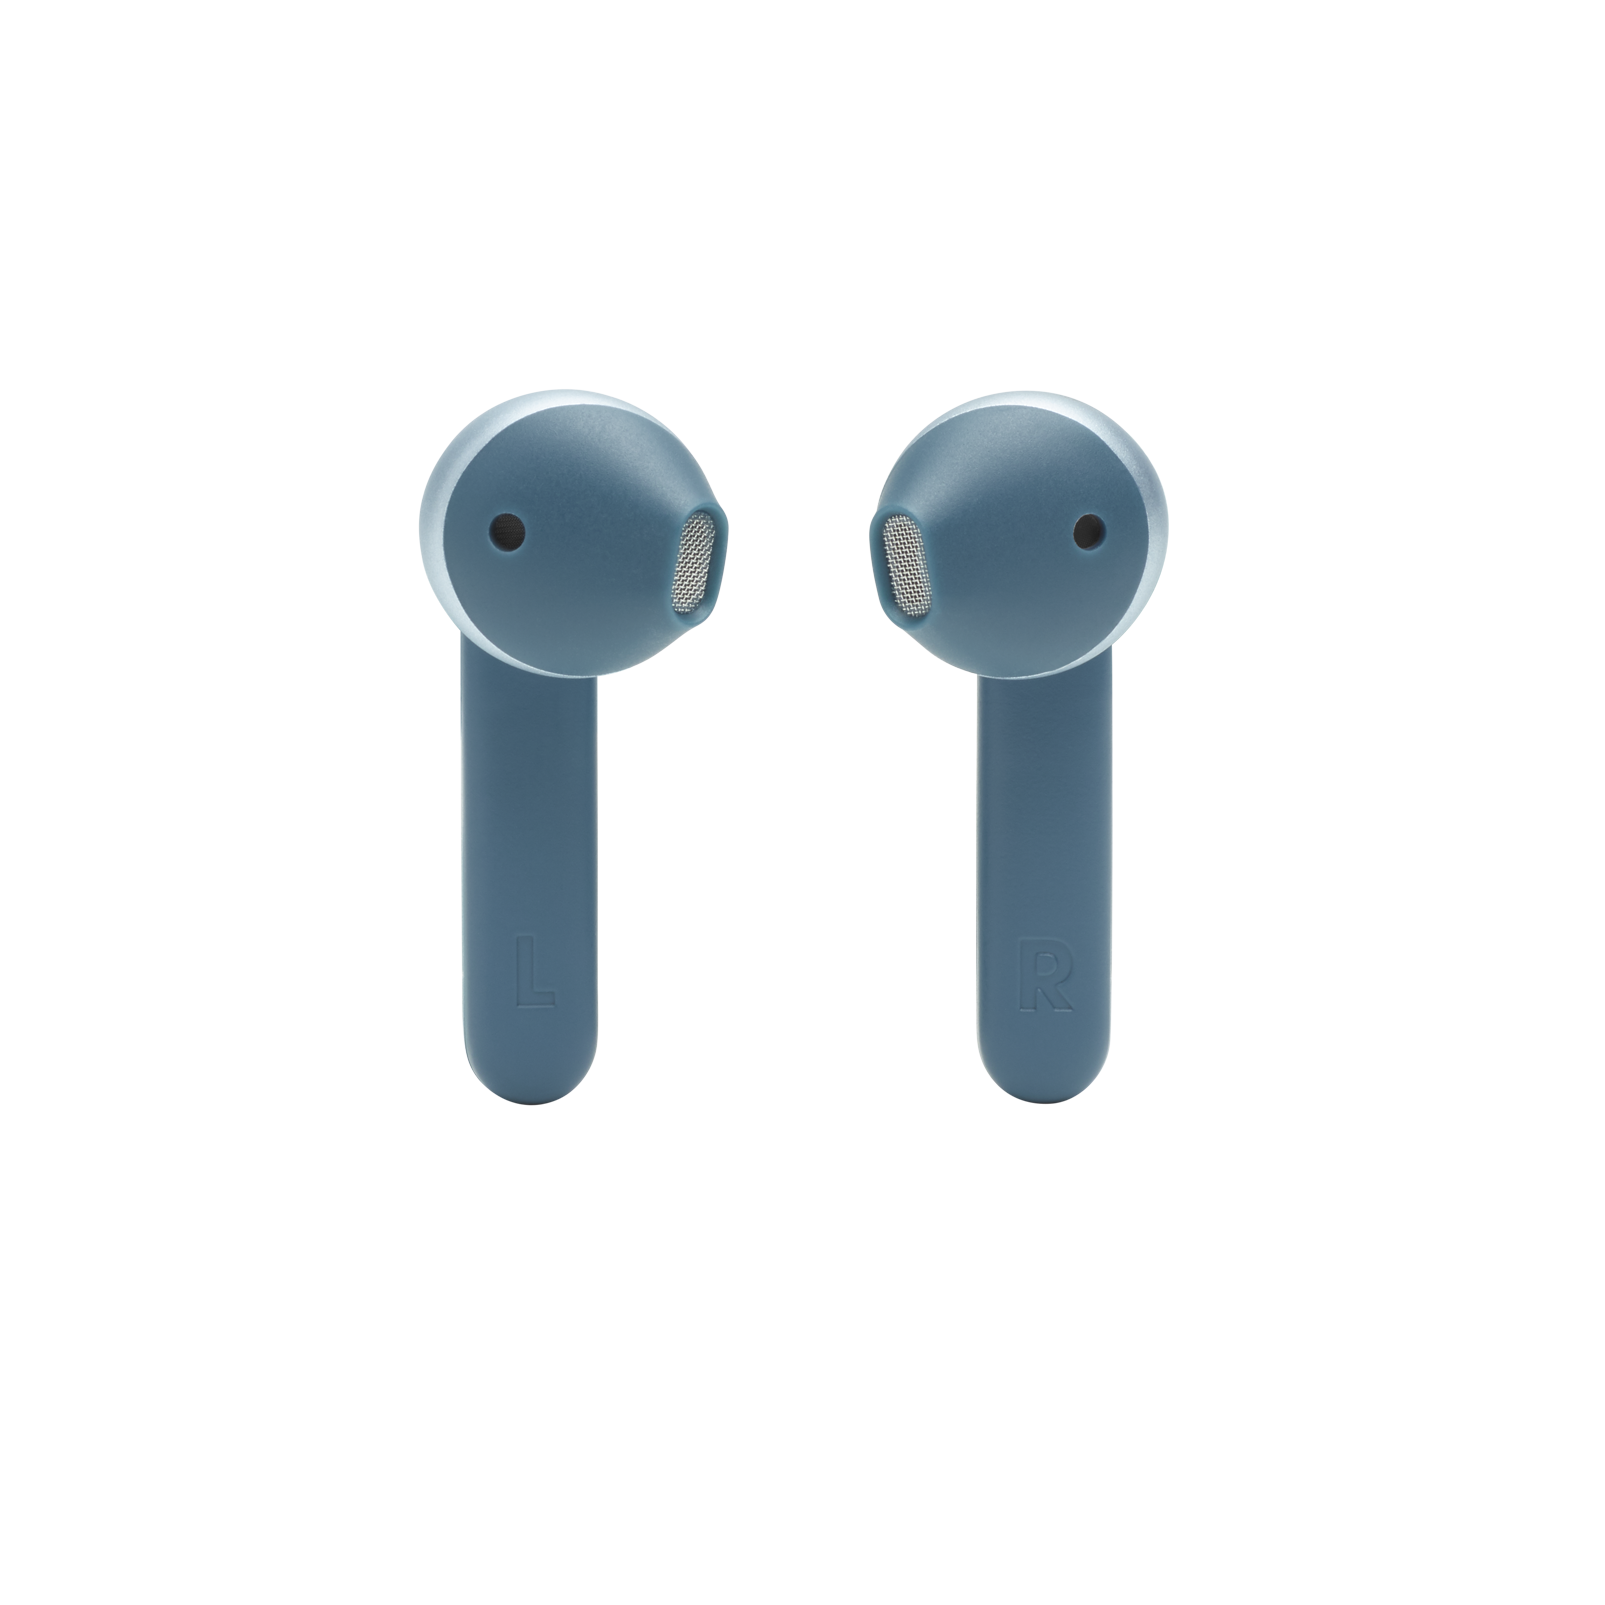 JBL Tune 225TWS - Blue - True wireless earbud headphones - Detailshot 1